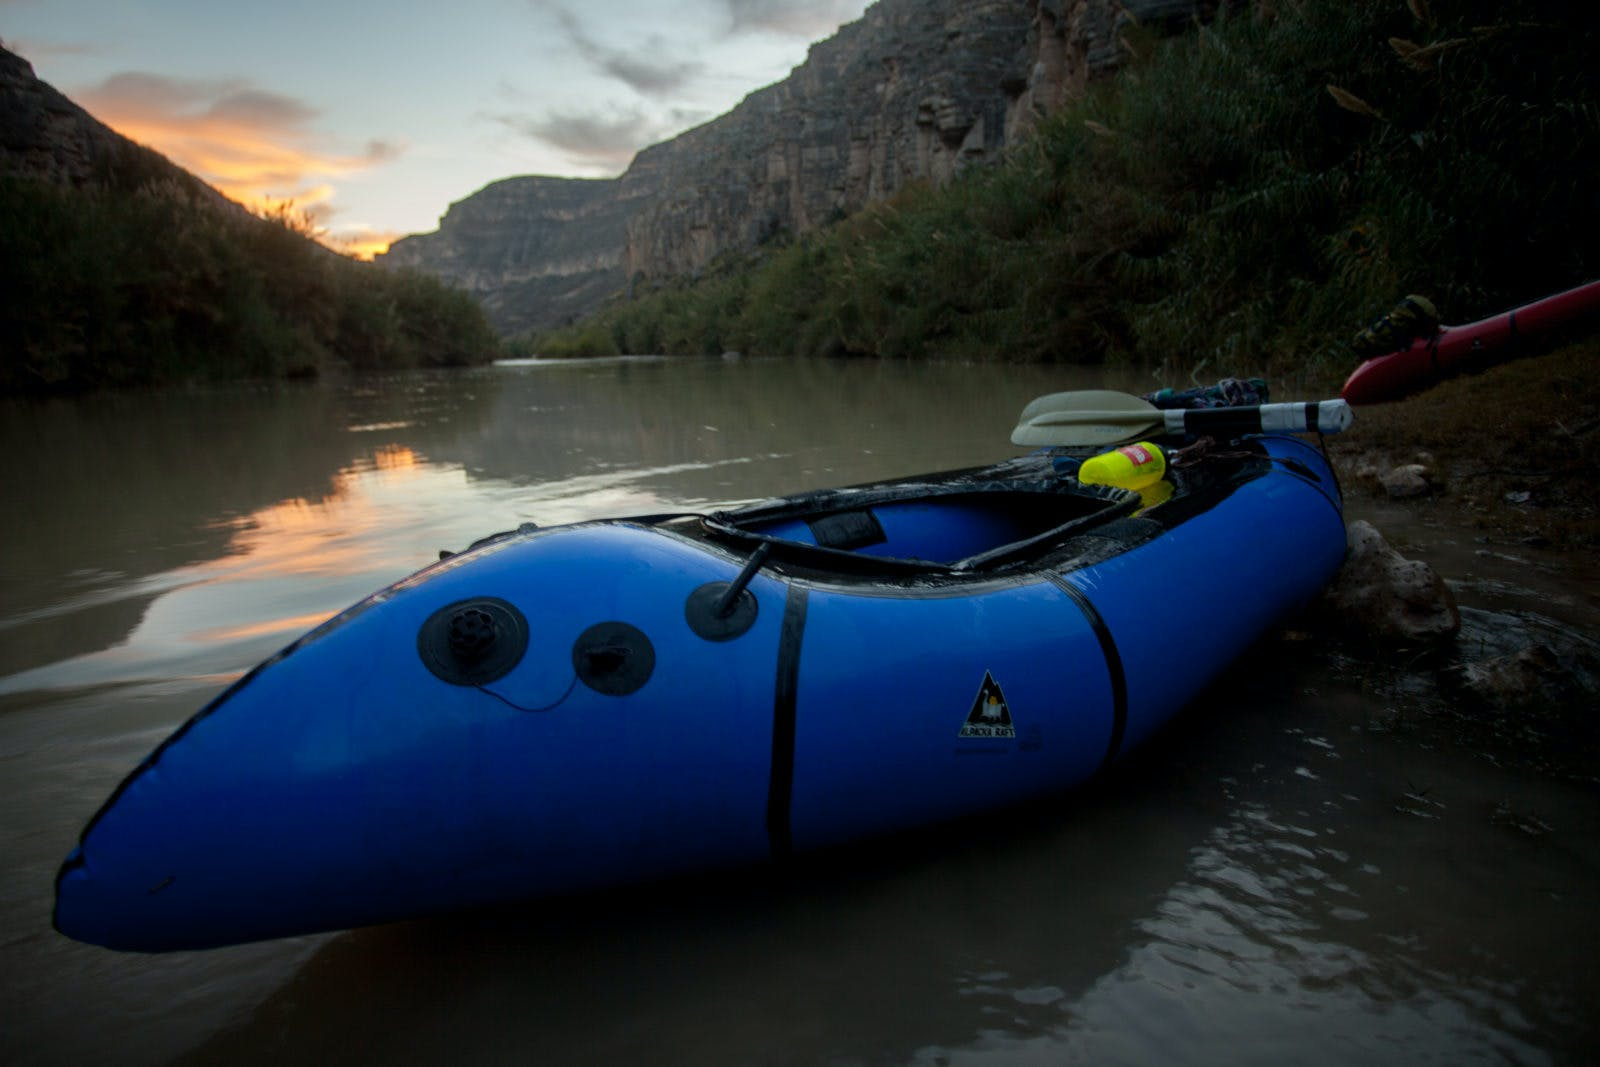 The end of day 7's paddling the Rio Grande - we hadn't been able to find a campsite due to the cane lining the river, so we'd been forced to keep going past sunset.